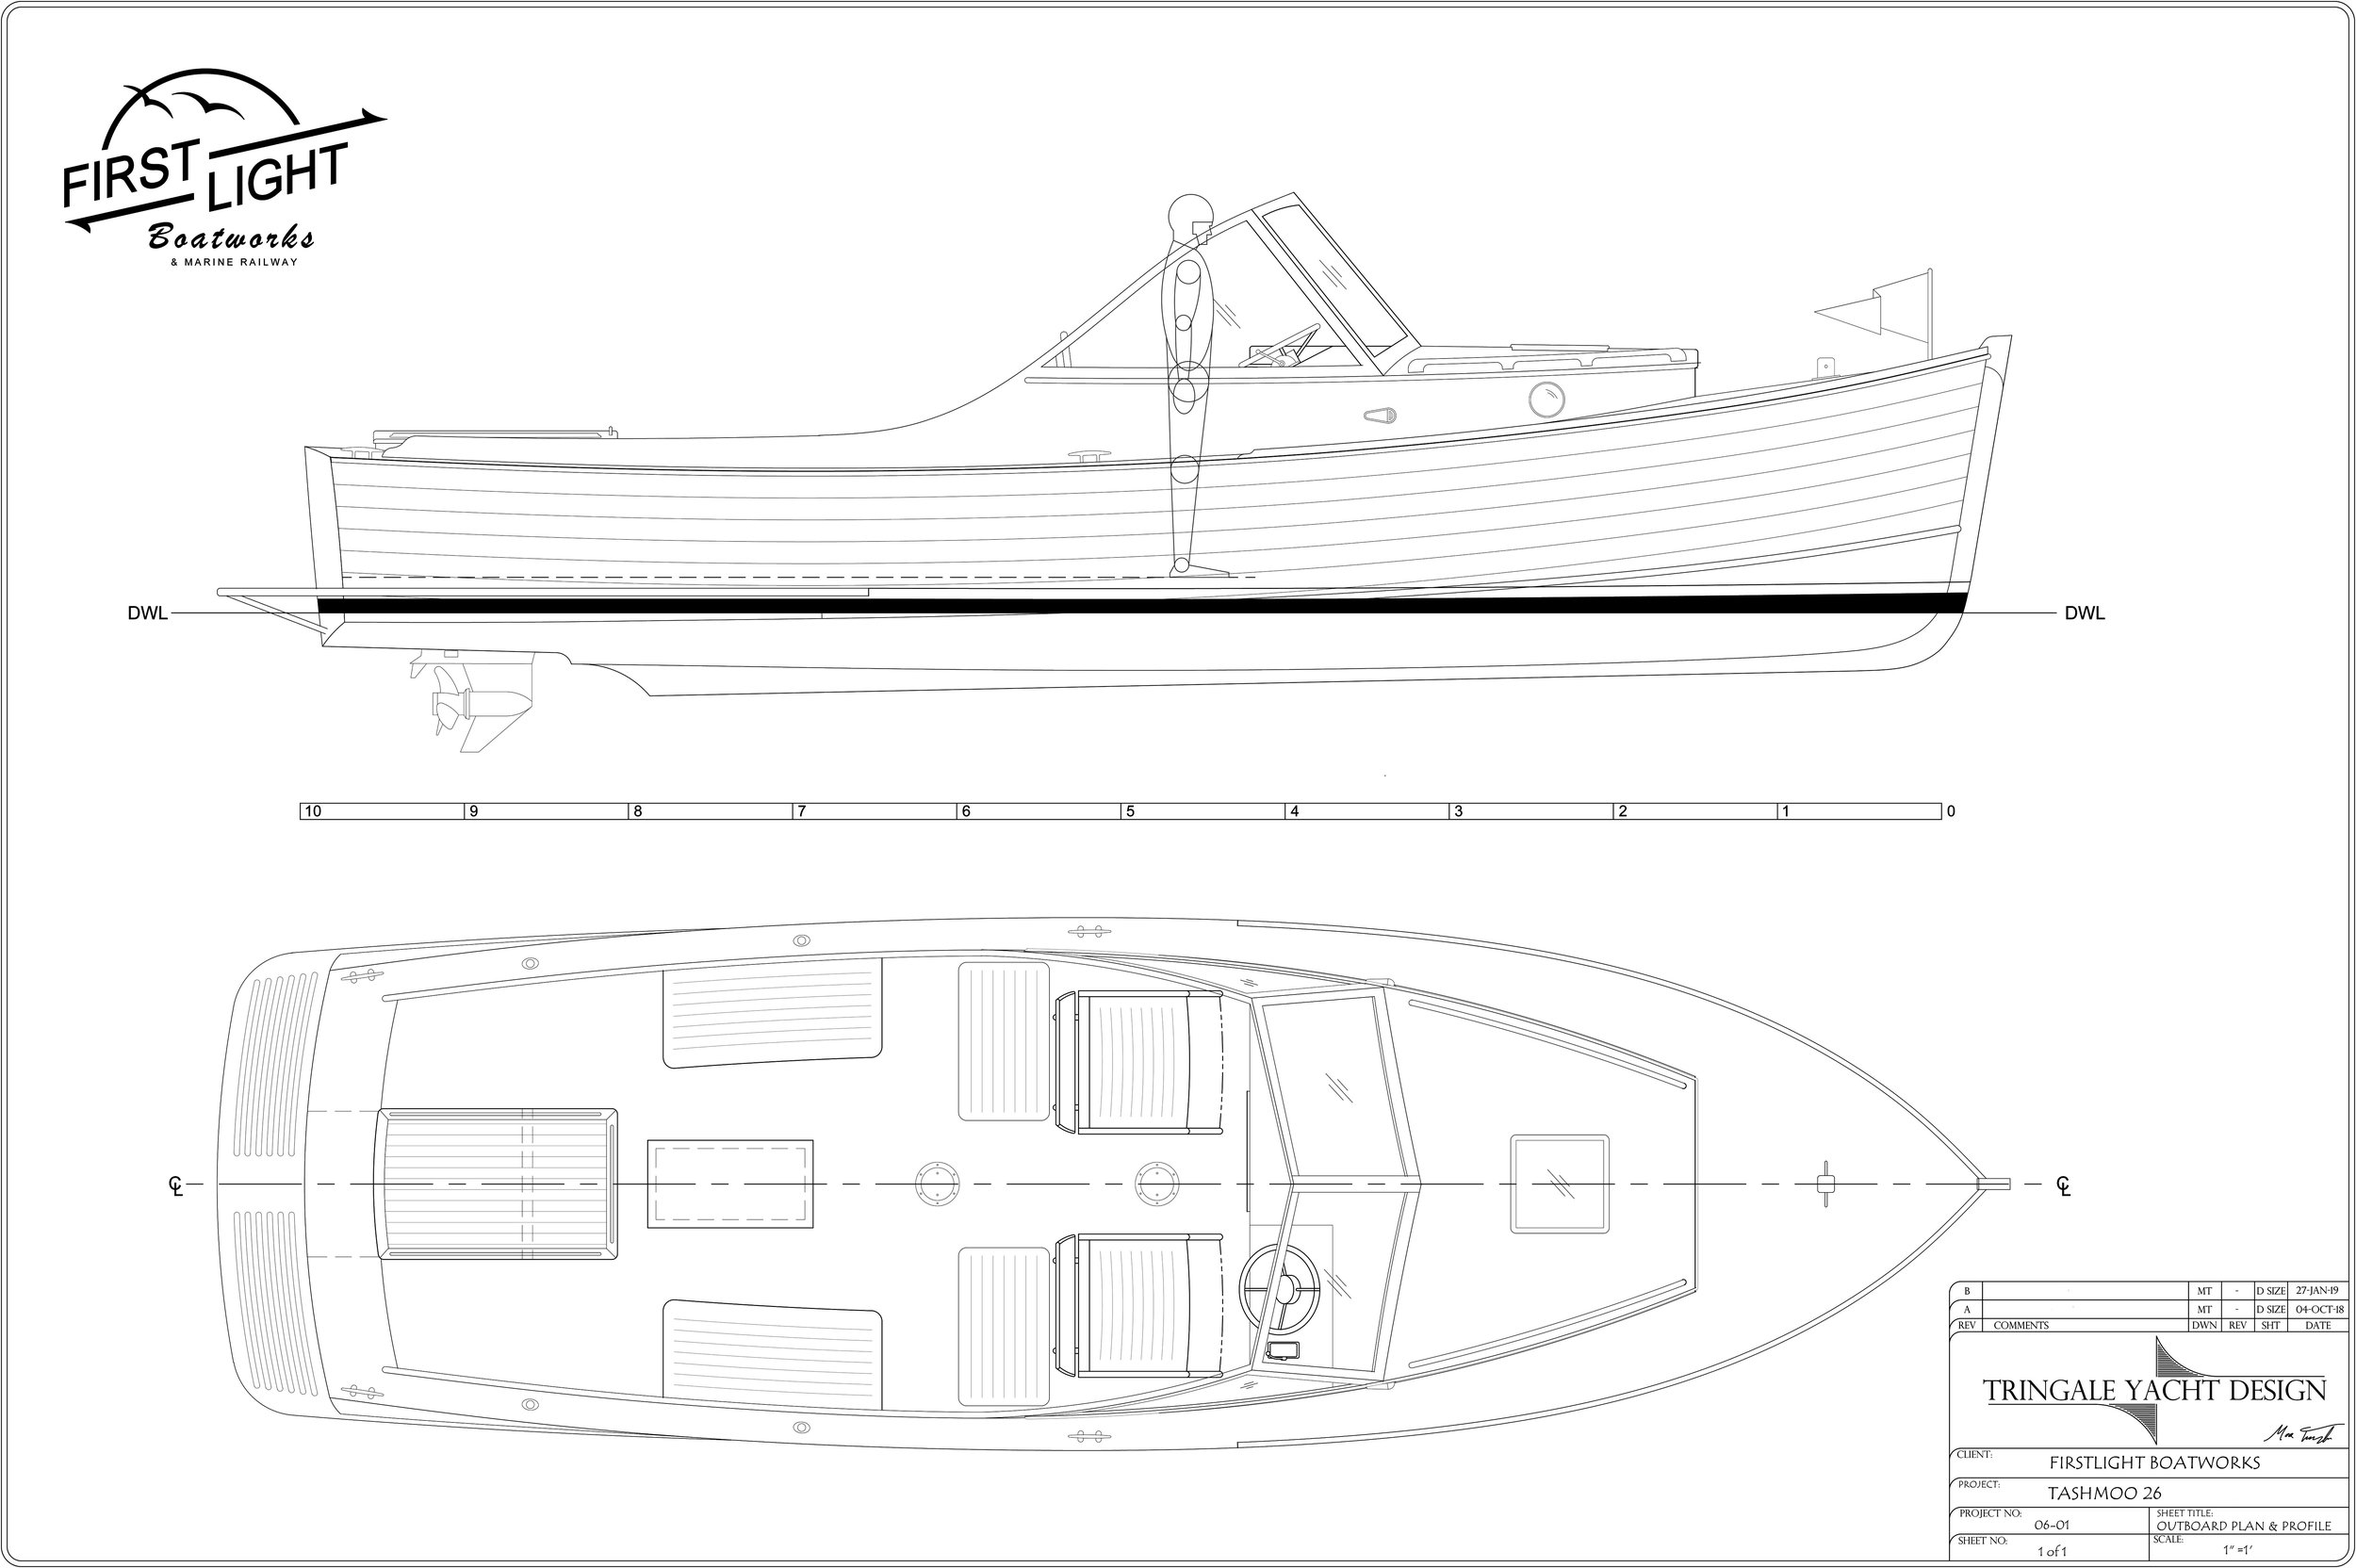 06-01_Tashmoo 26_Outboard Plan & Profile_Rev B.jpg